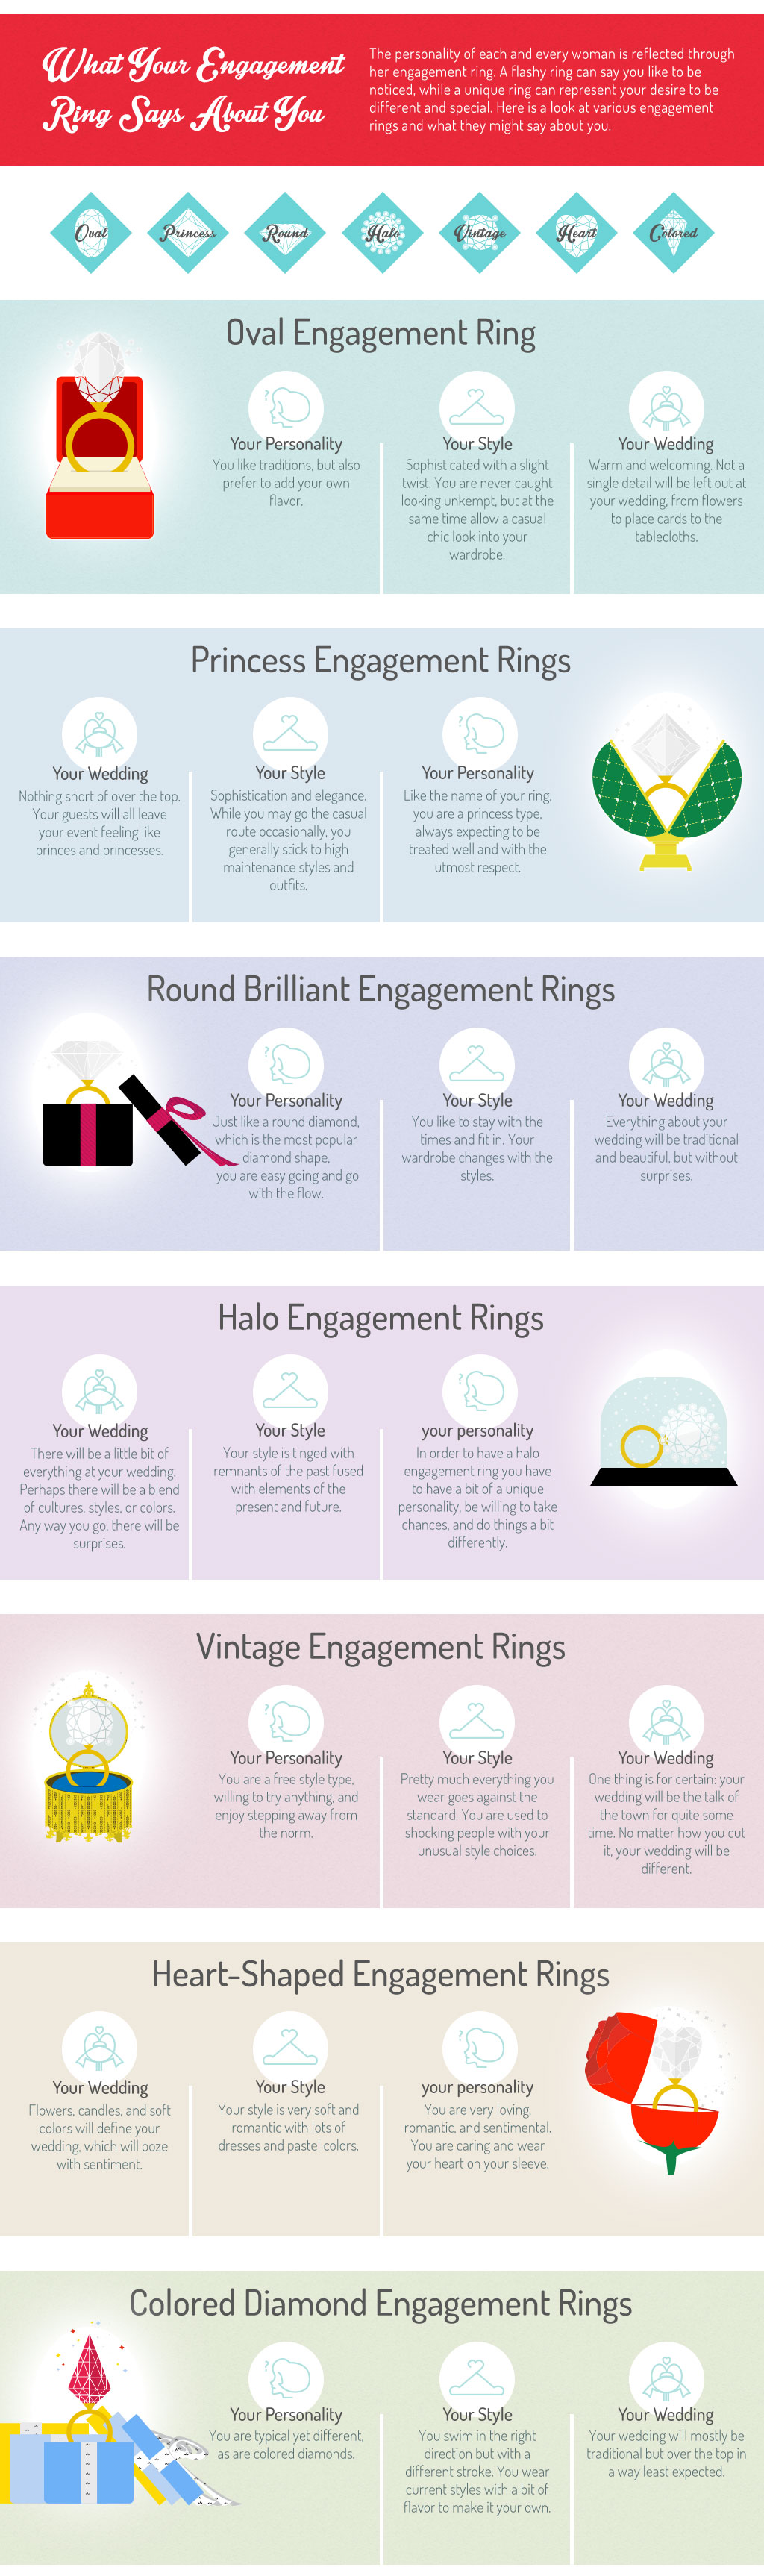 genesis diamonds infographic